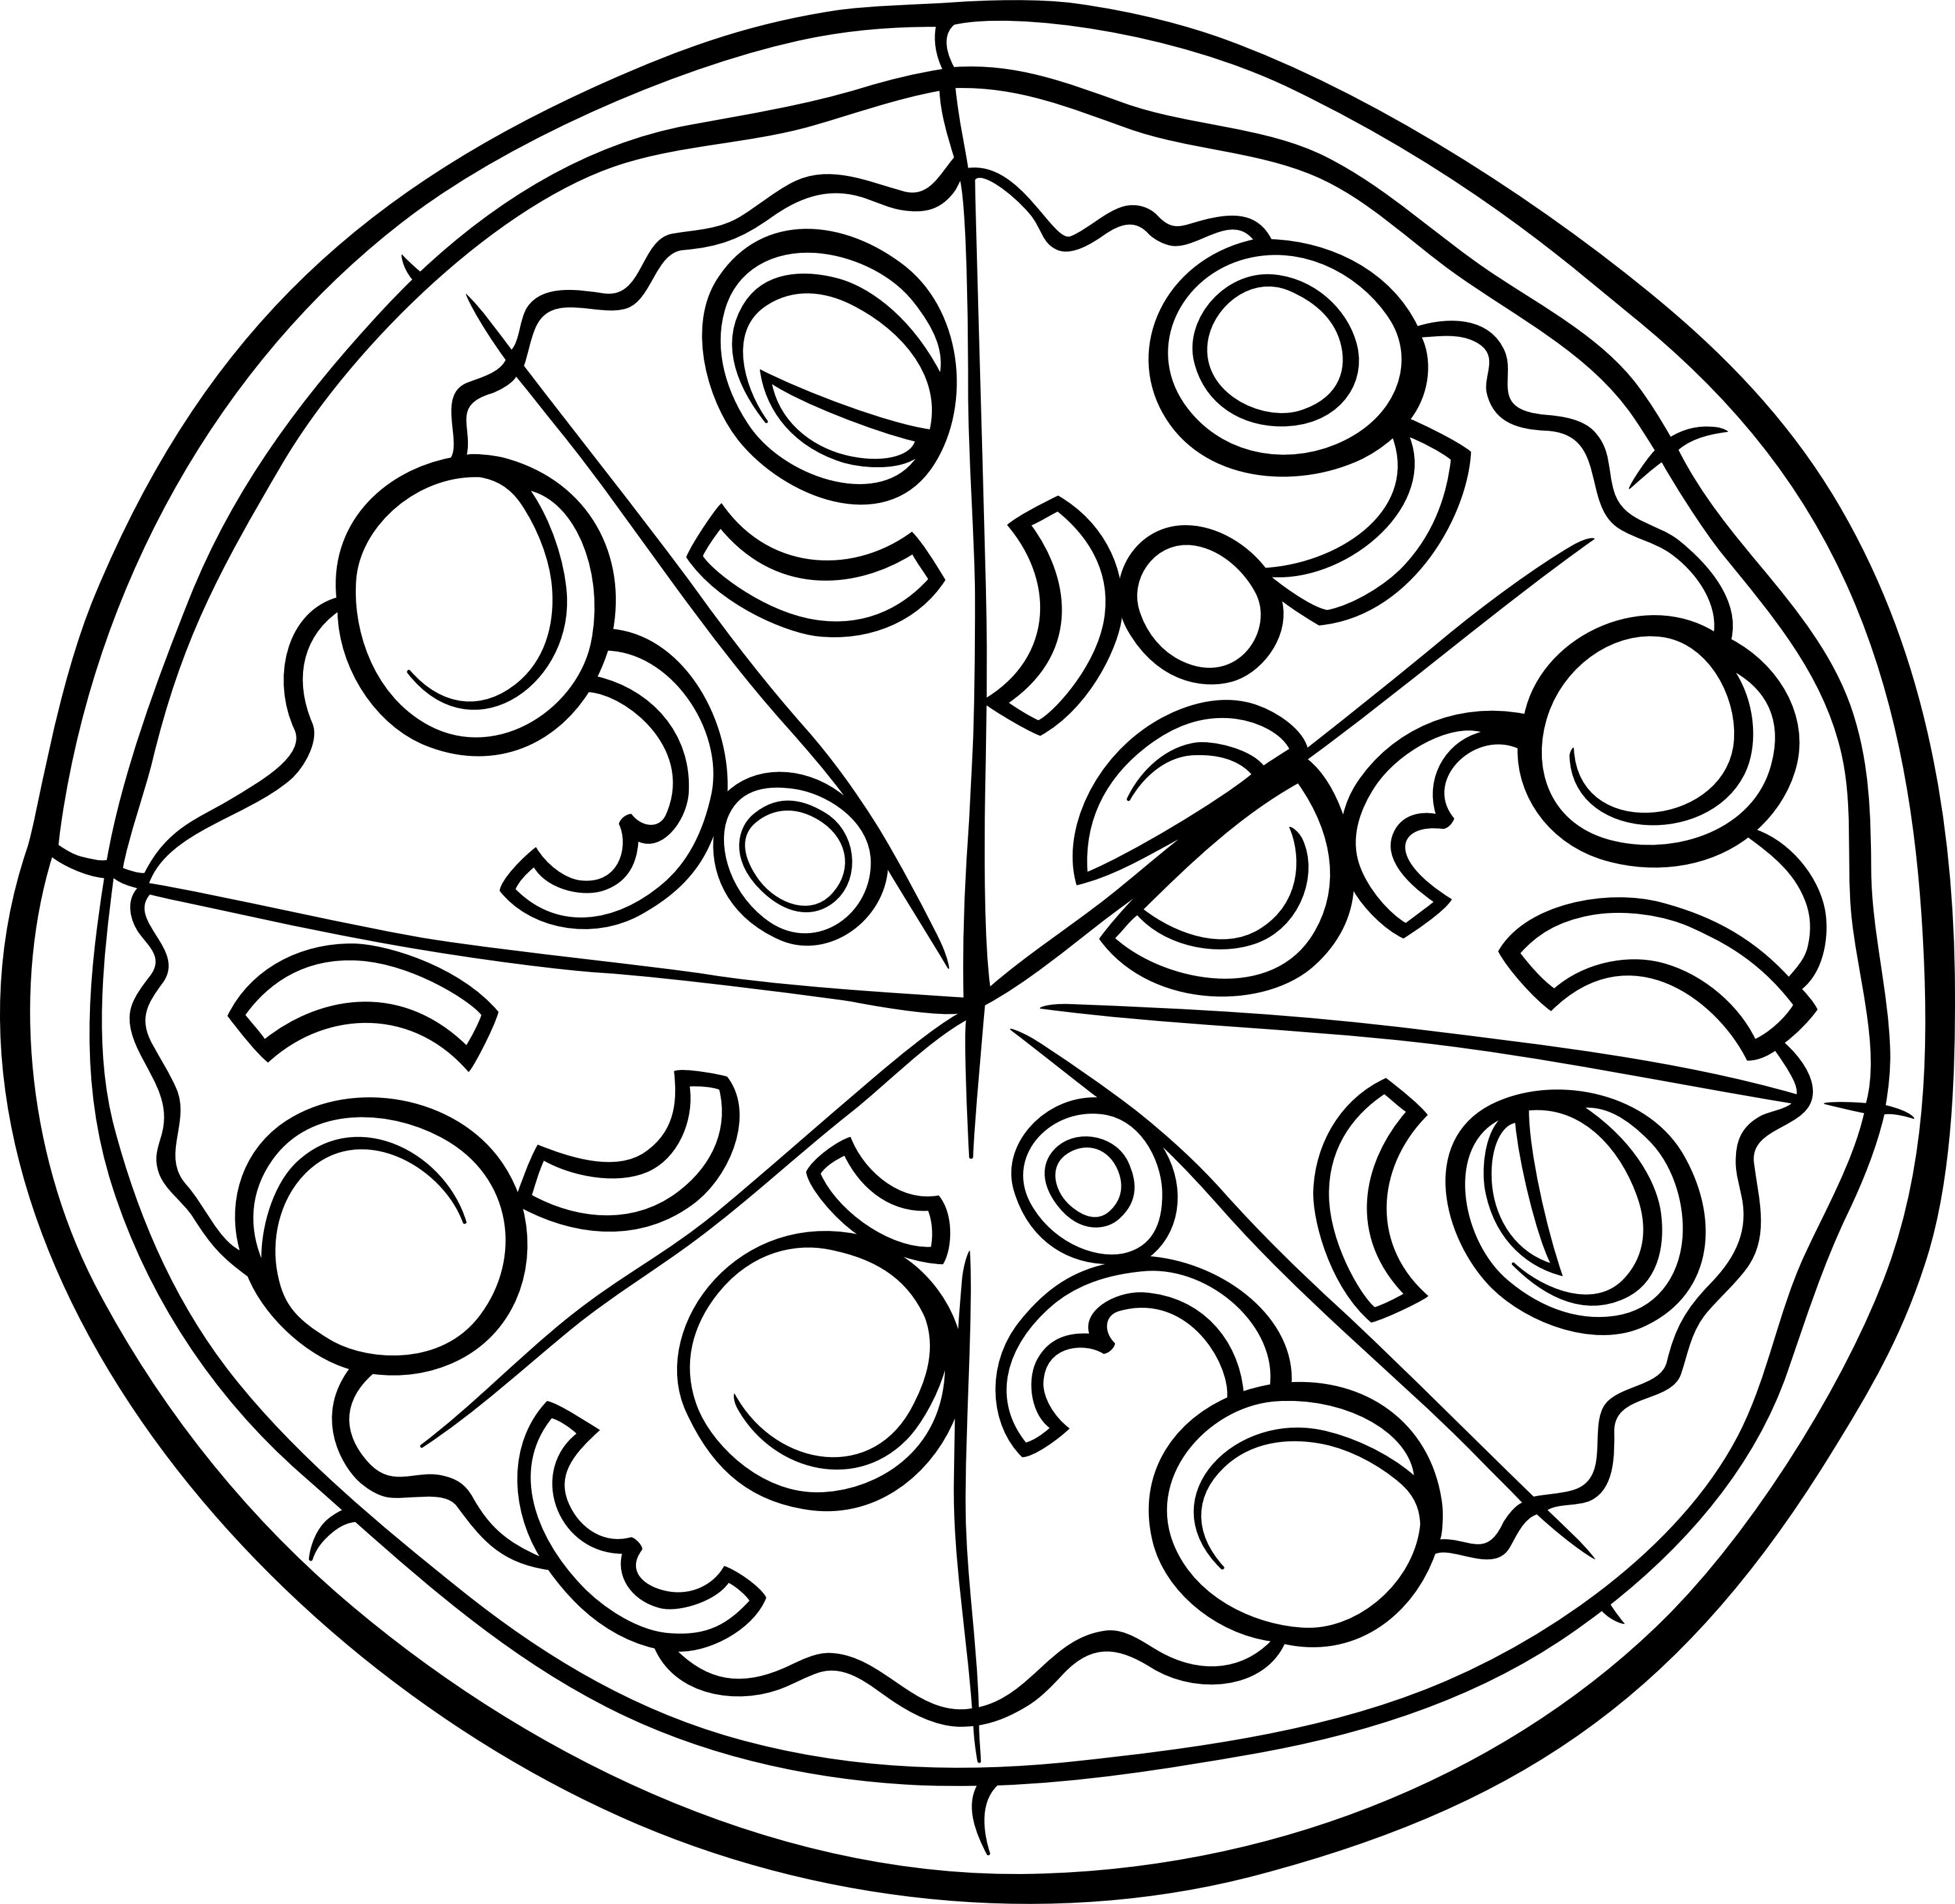 3000x2922 Pizza Coloring Page Printable Coloring Food Art